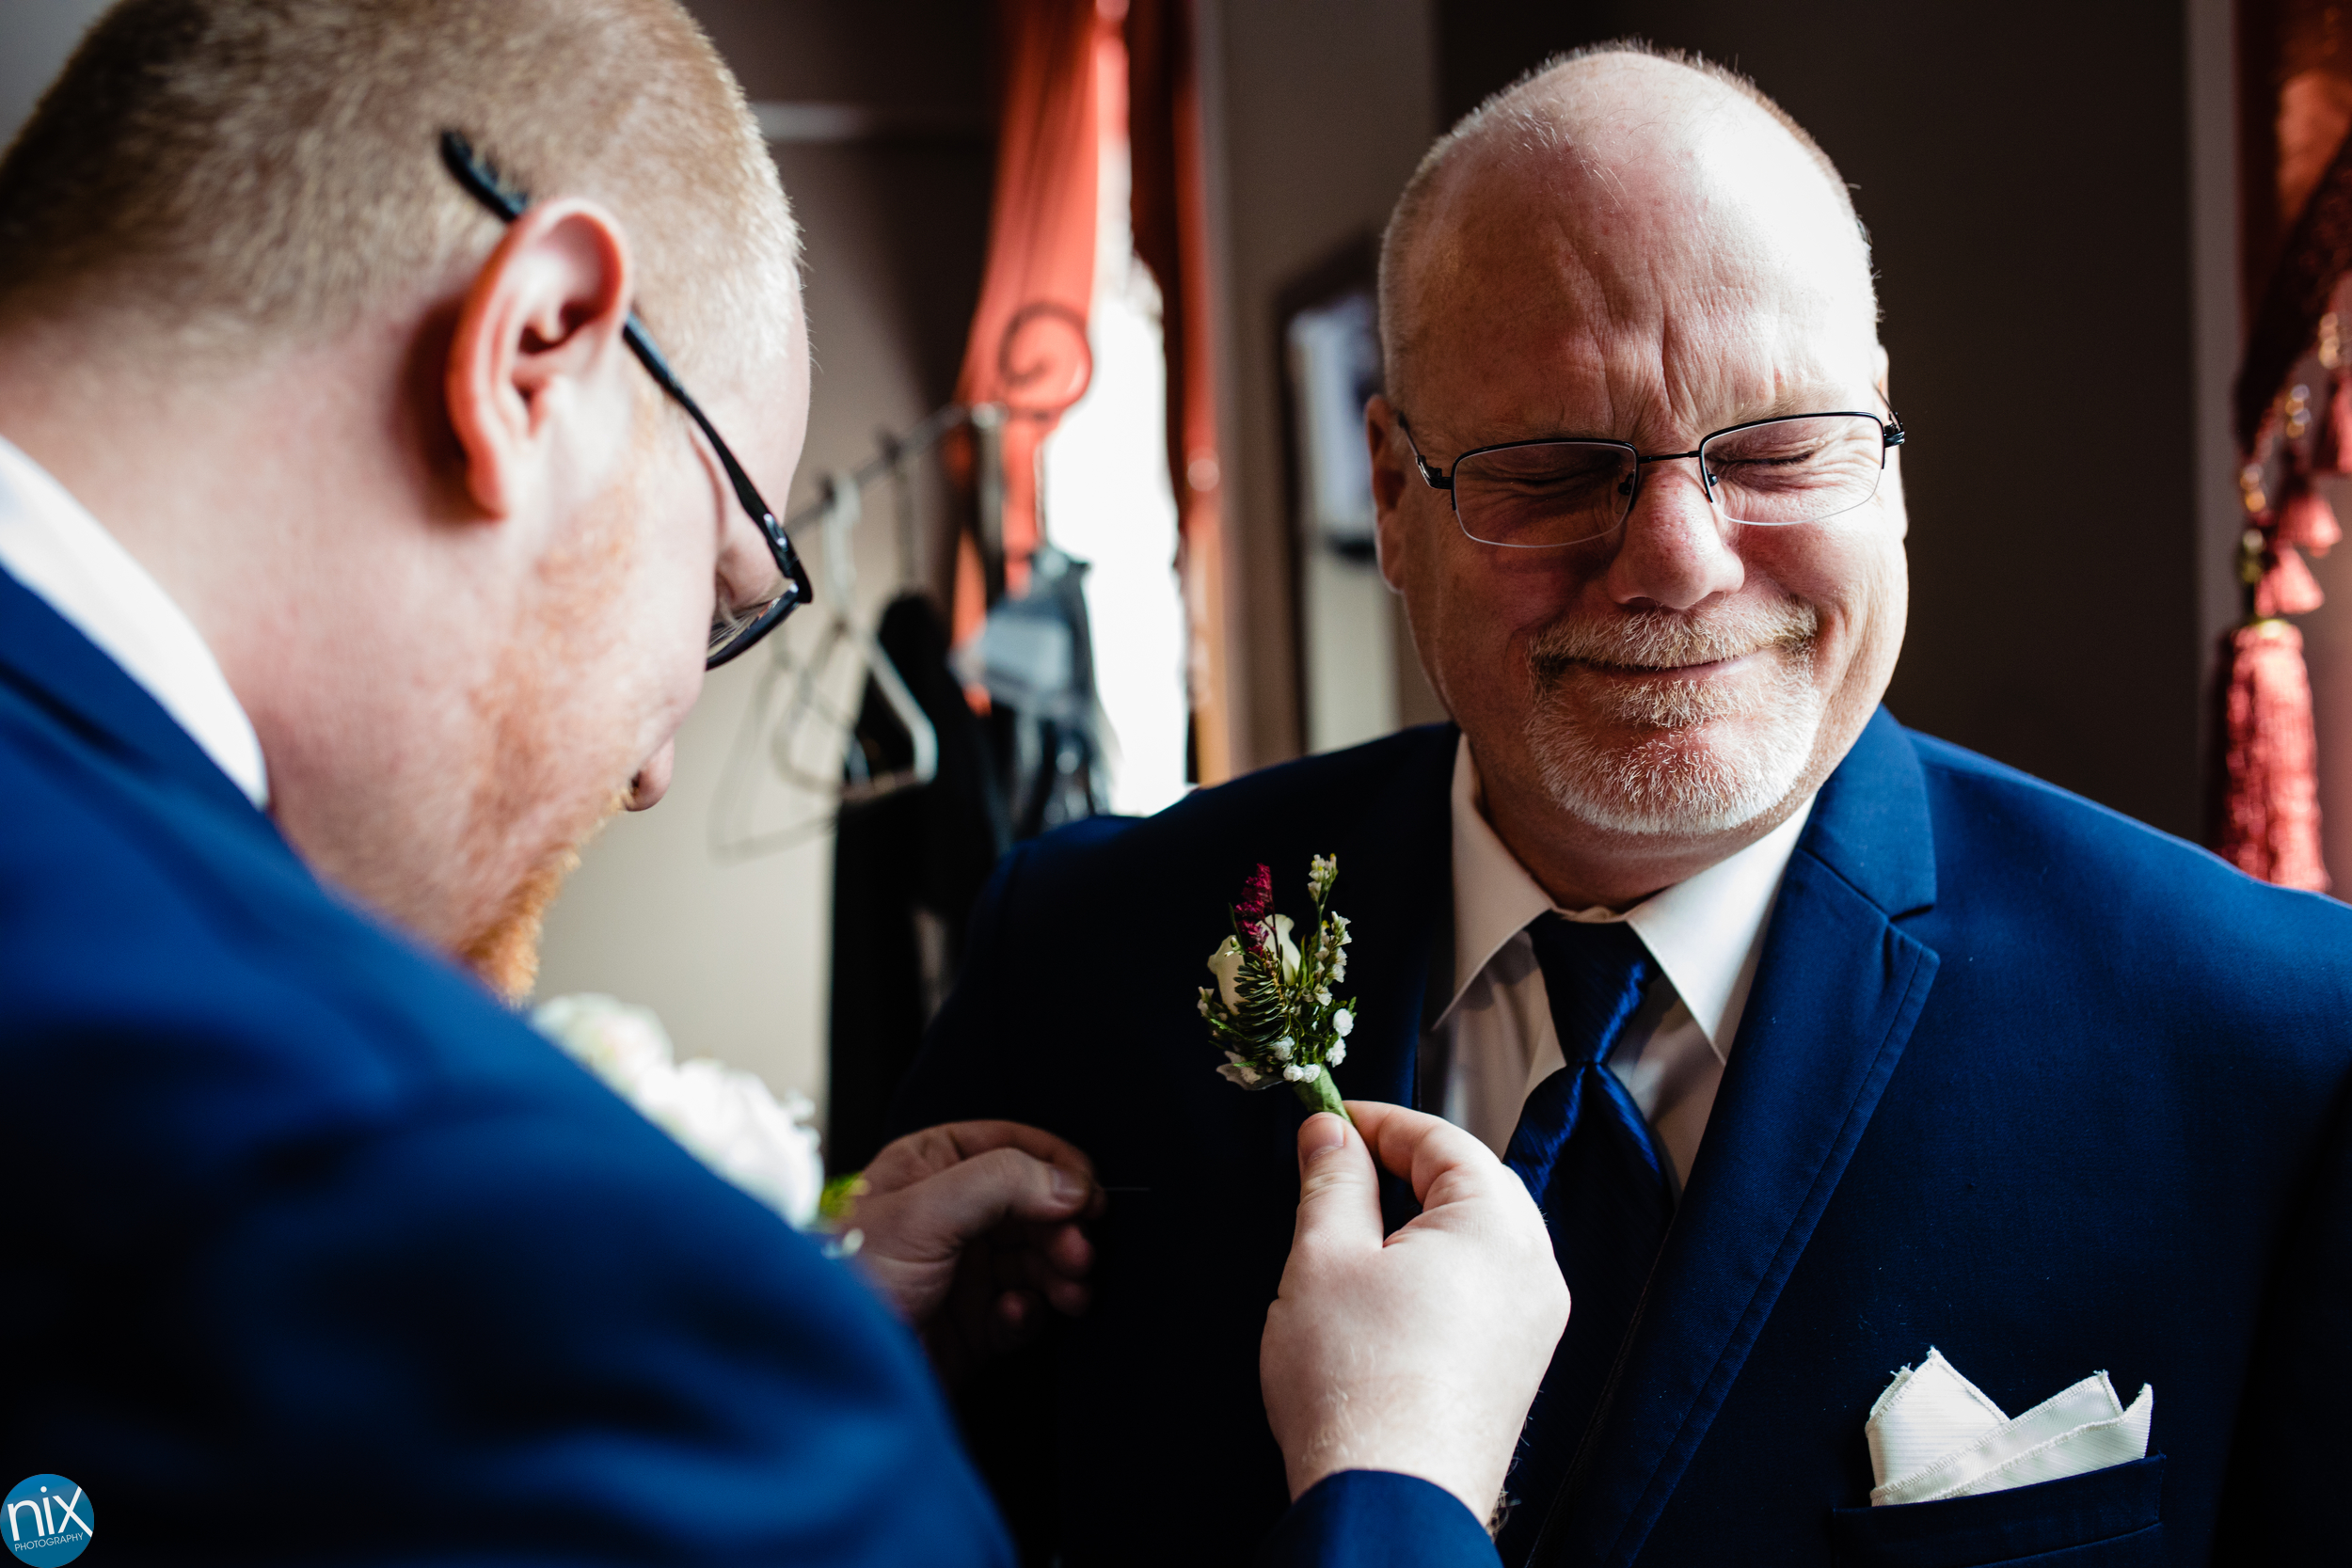 dad cries ar son places boutonniere on jacket.jpg